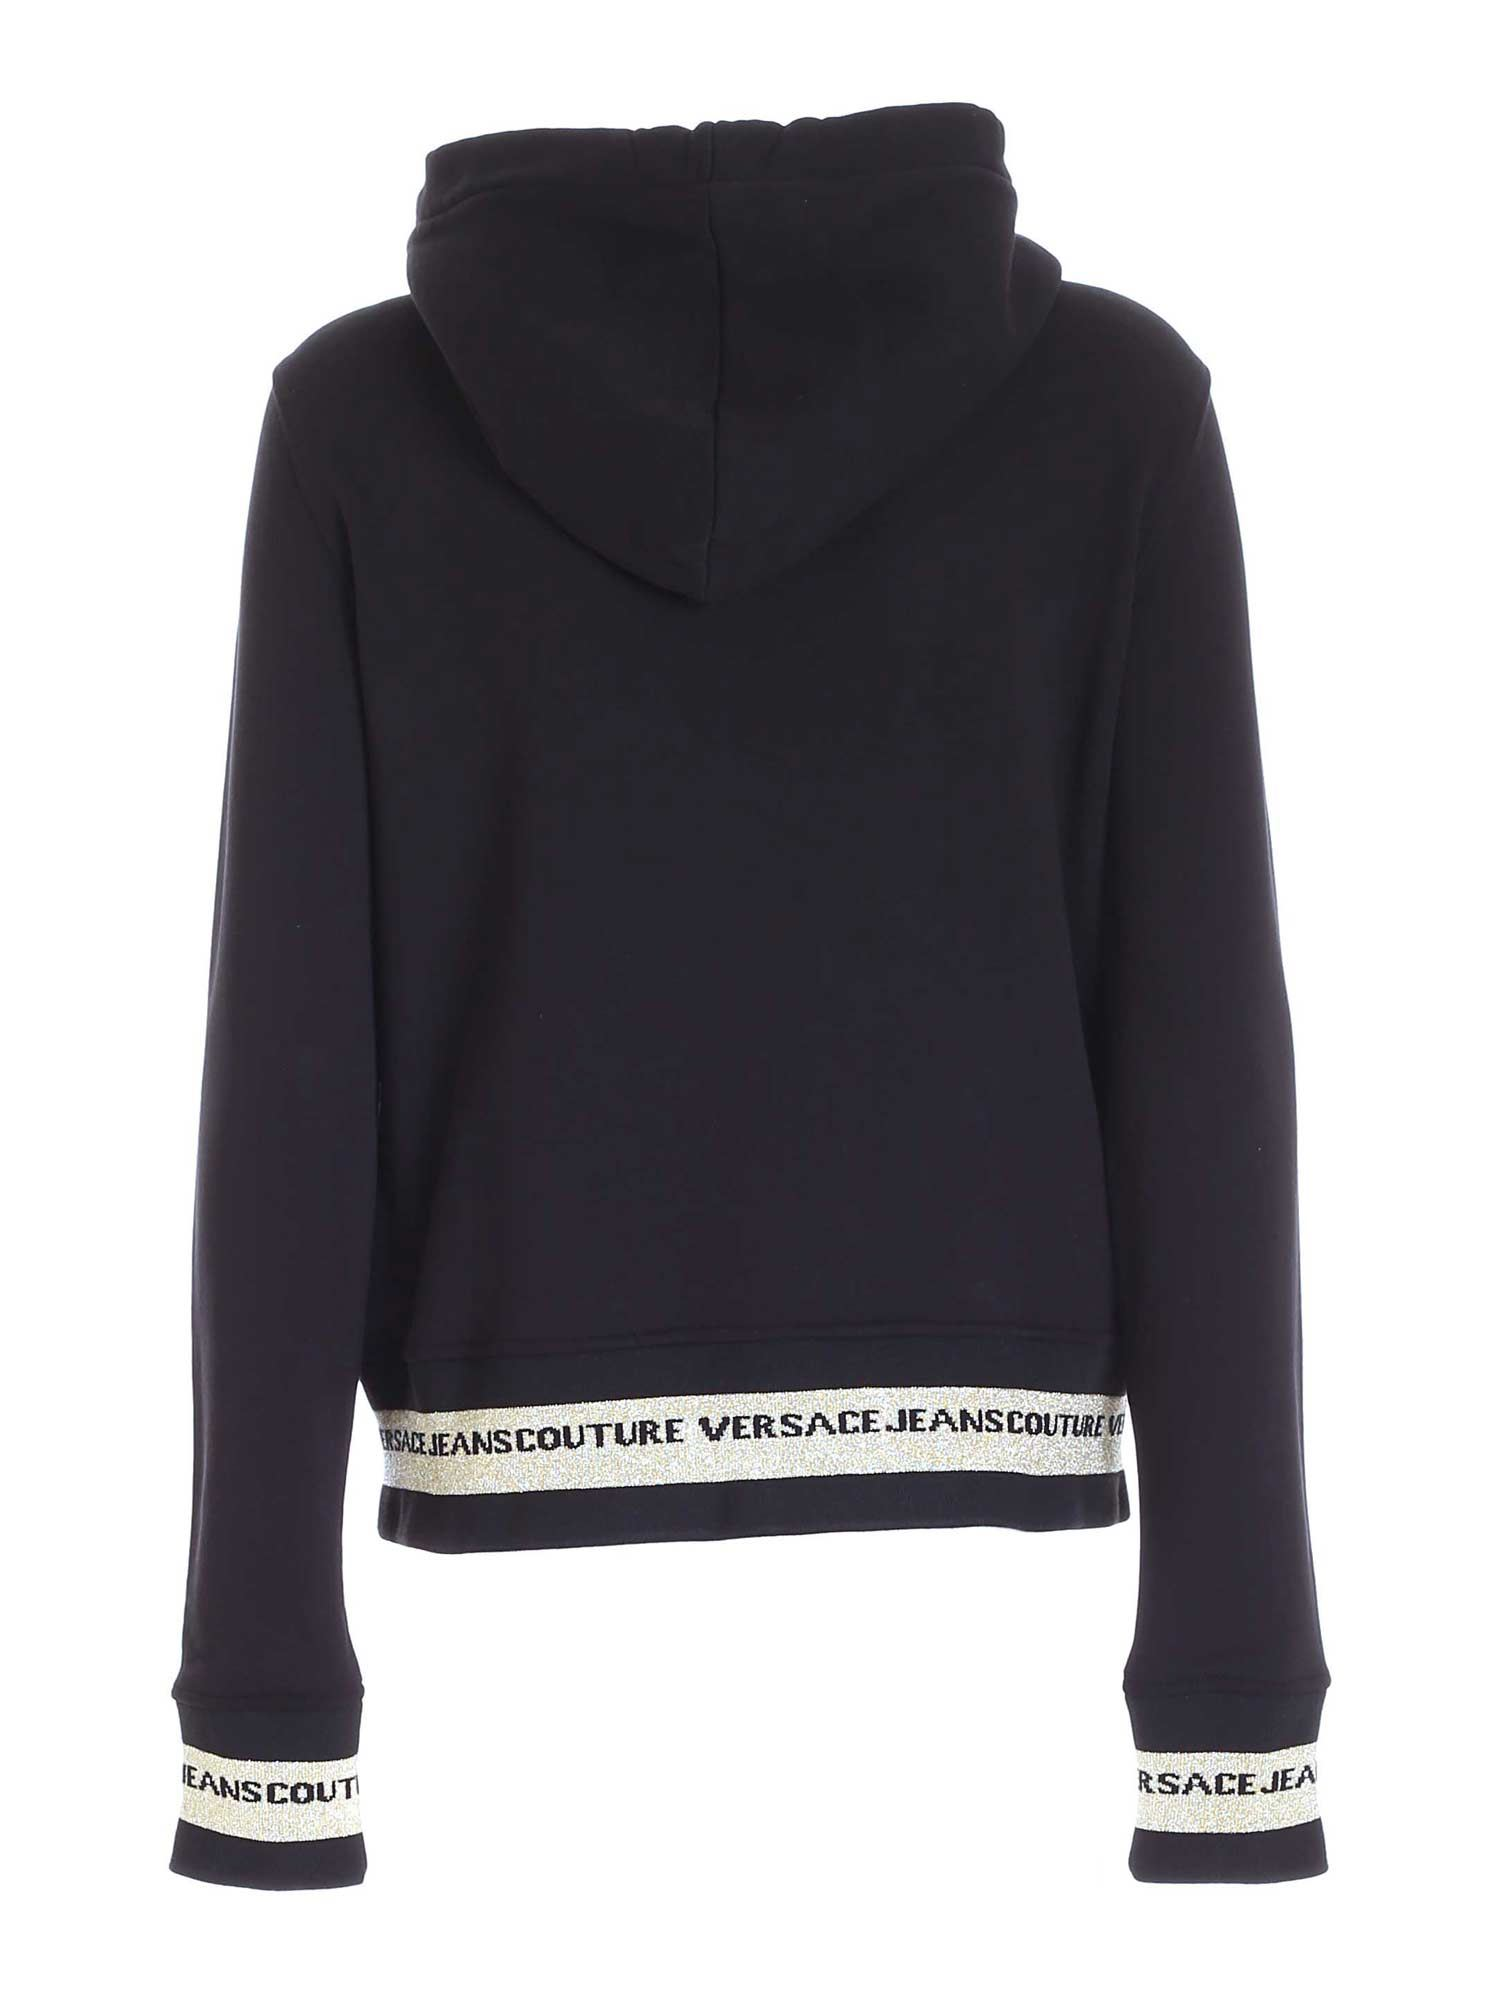 VERSACE JEANS COUTURE Cottons RUBBERIZED LOGO SWEATSHIRT IN BLACK